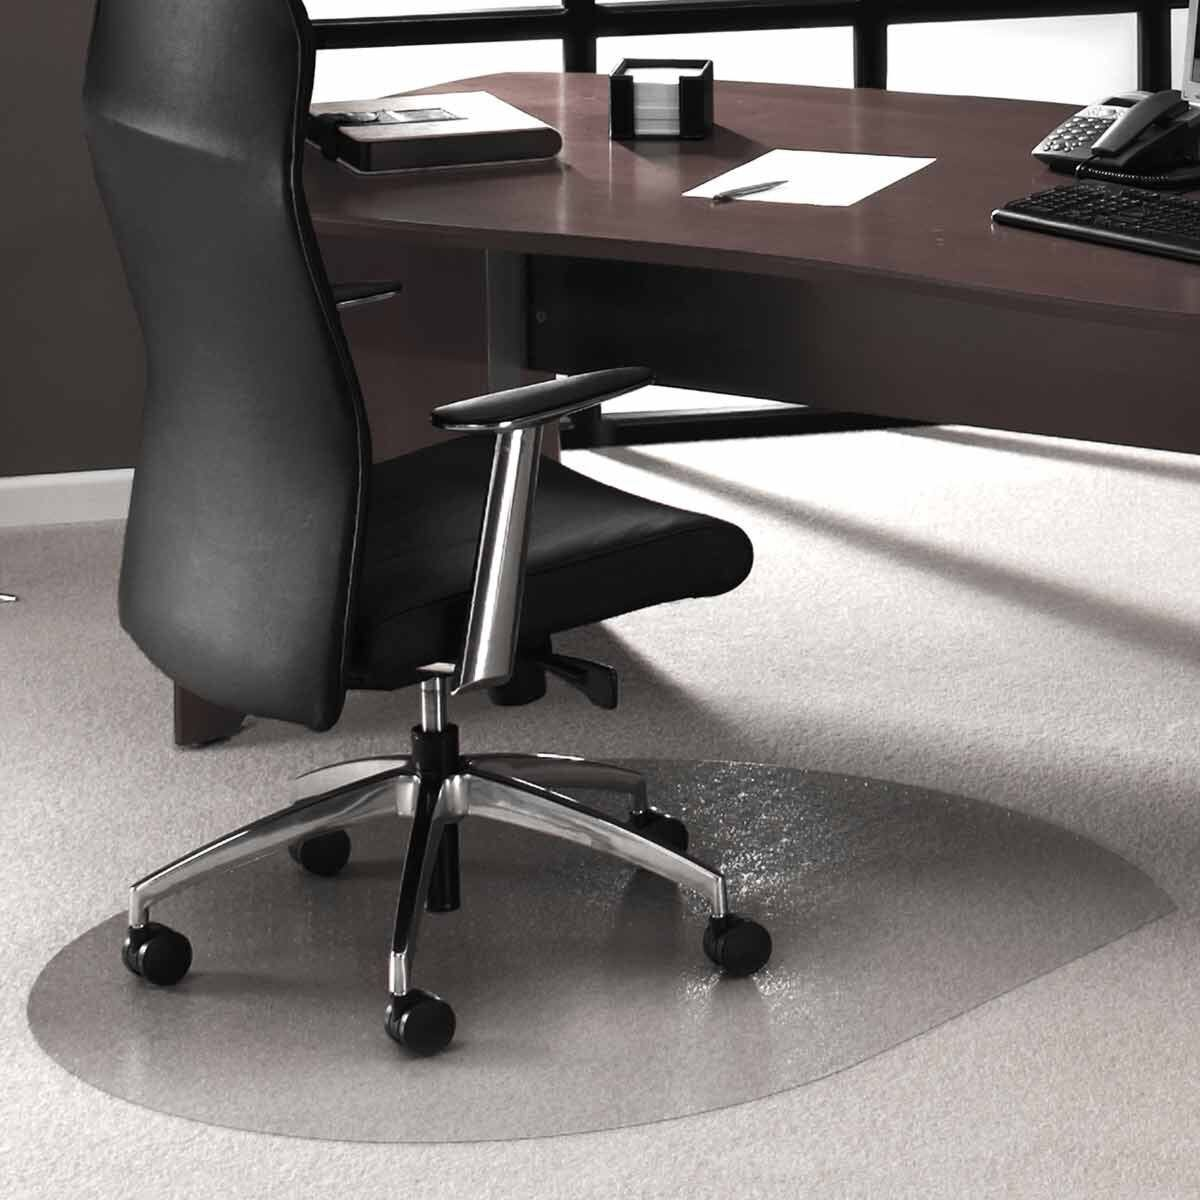 Cleartex Ultimat Chair Mat For Low And Medium Pile Carpet Contoured 99 X 125cm